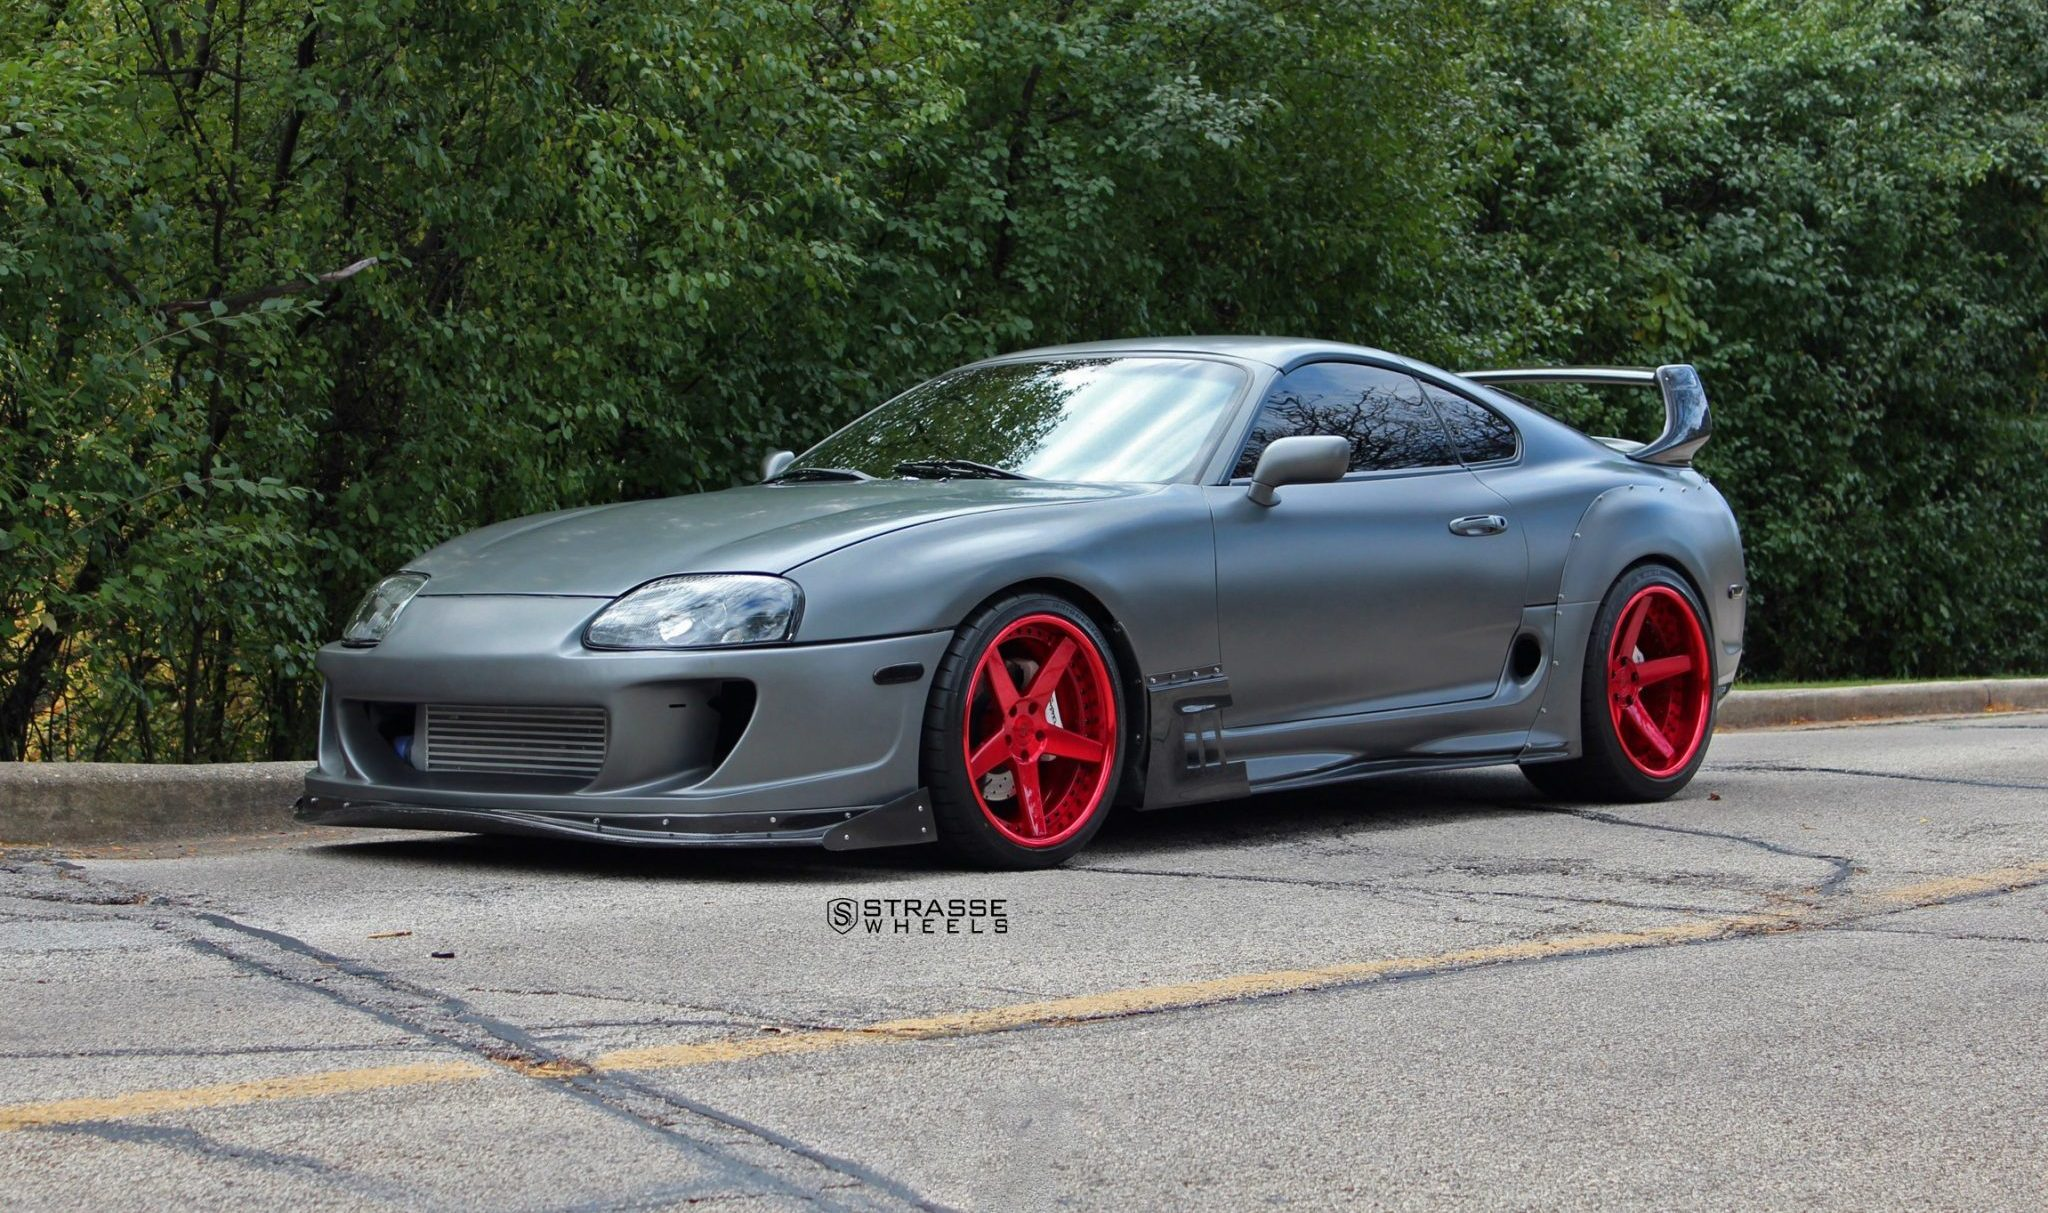 toyota supra mkiv s5 deep concave strasse wheels. Black Bedroom Furniture Sets. Home Design Ideas